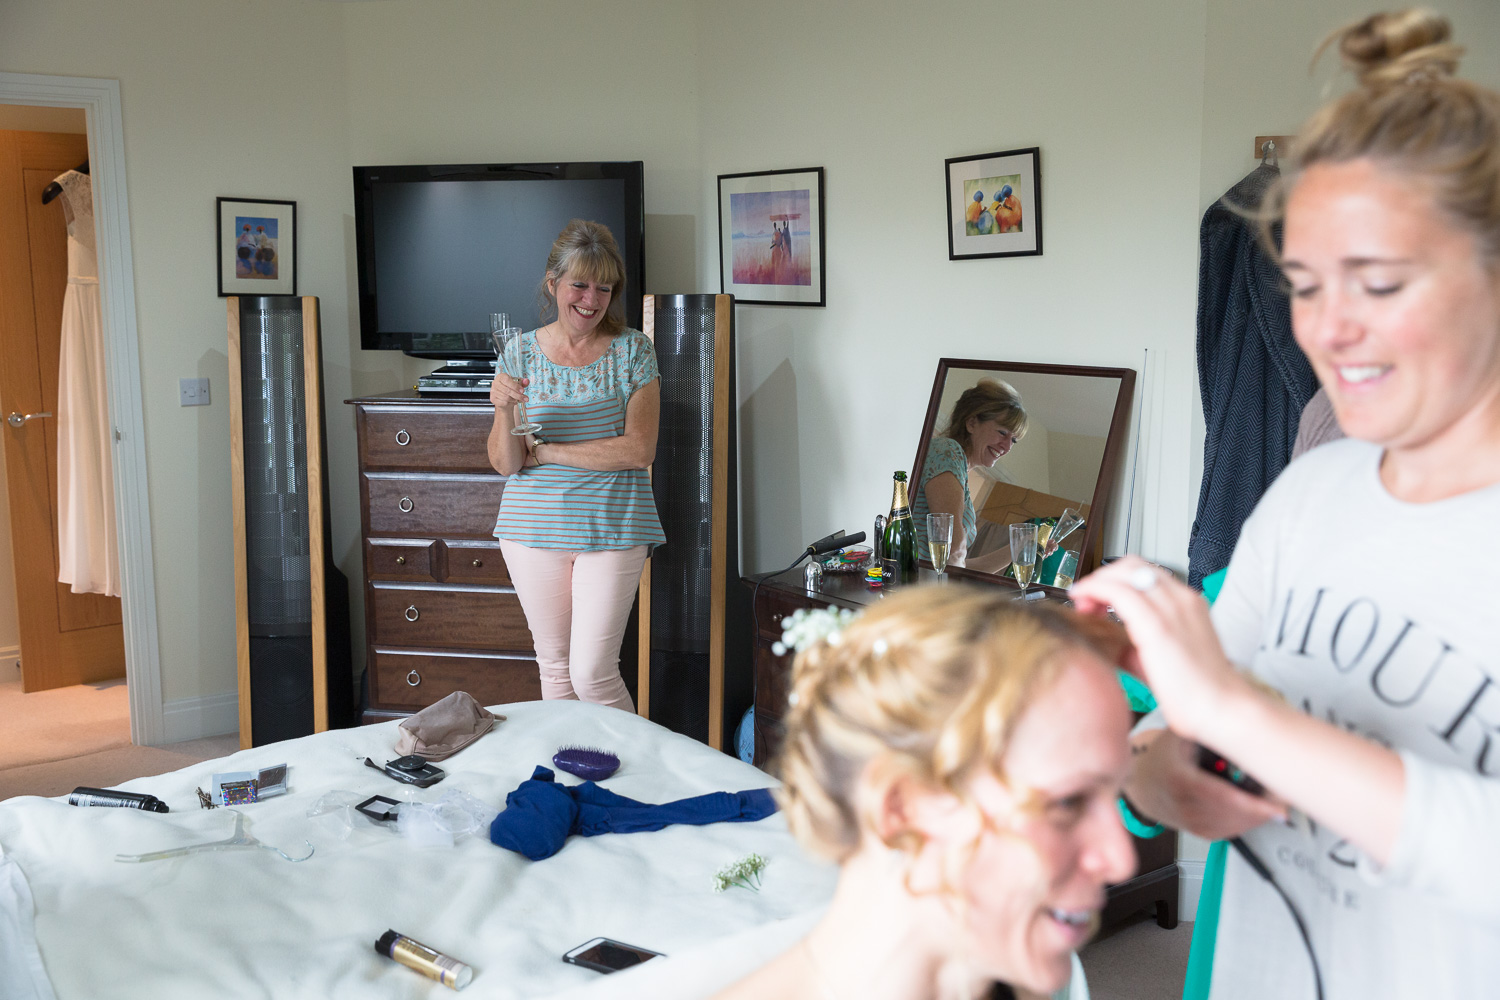 Wedding photography portfolio mother of the bride watching hairdresser